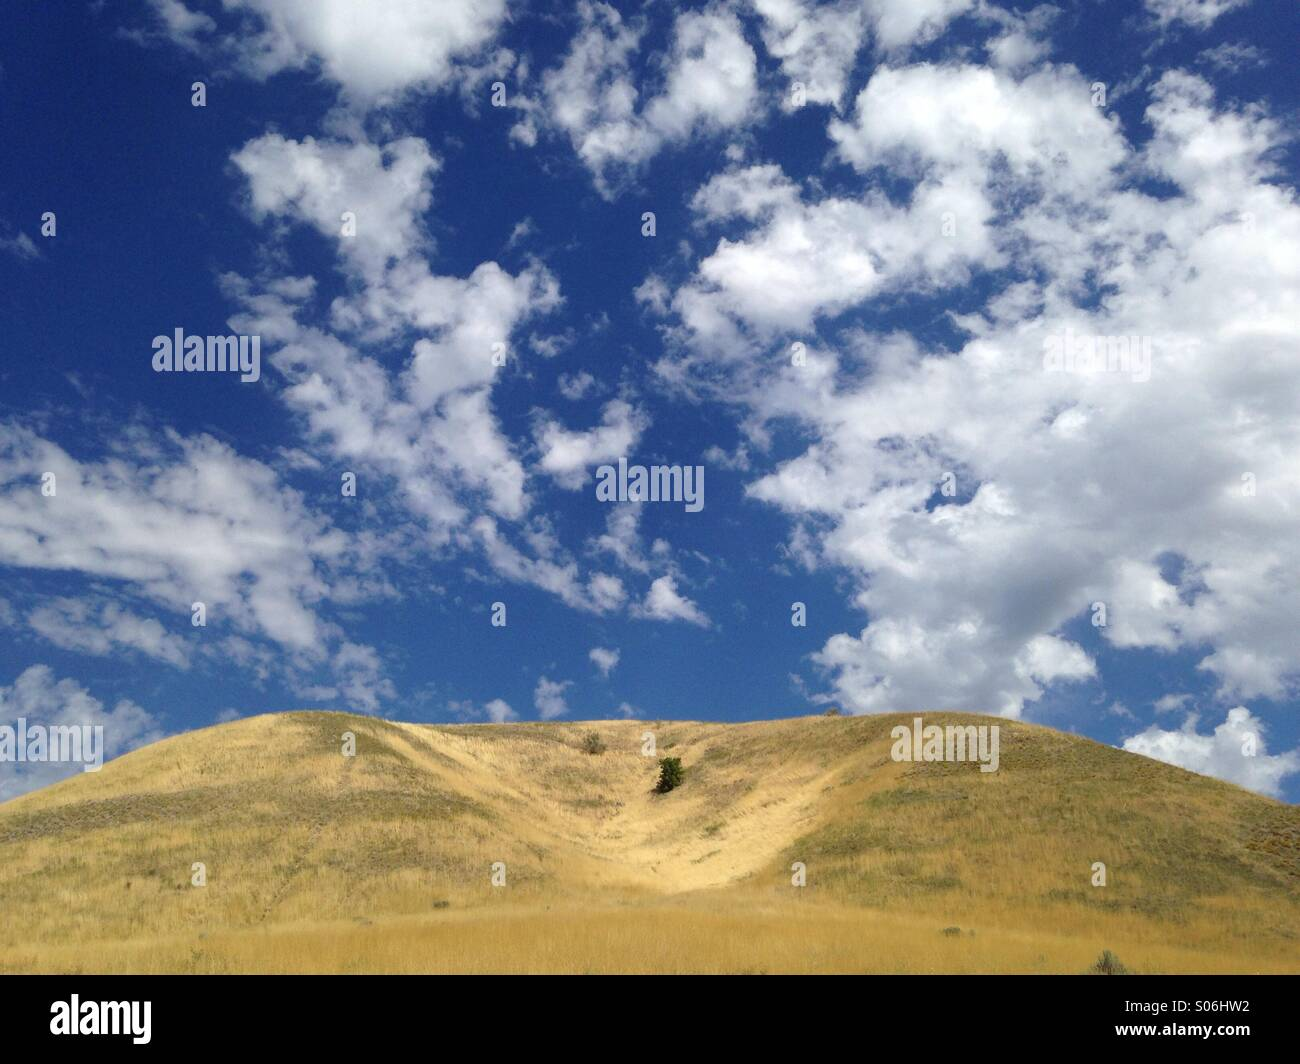 Blue sky and whispy clouds above the hills along the Wasatch a Mountains of Salt Lake City, UT. Stock Photo